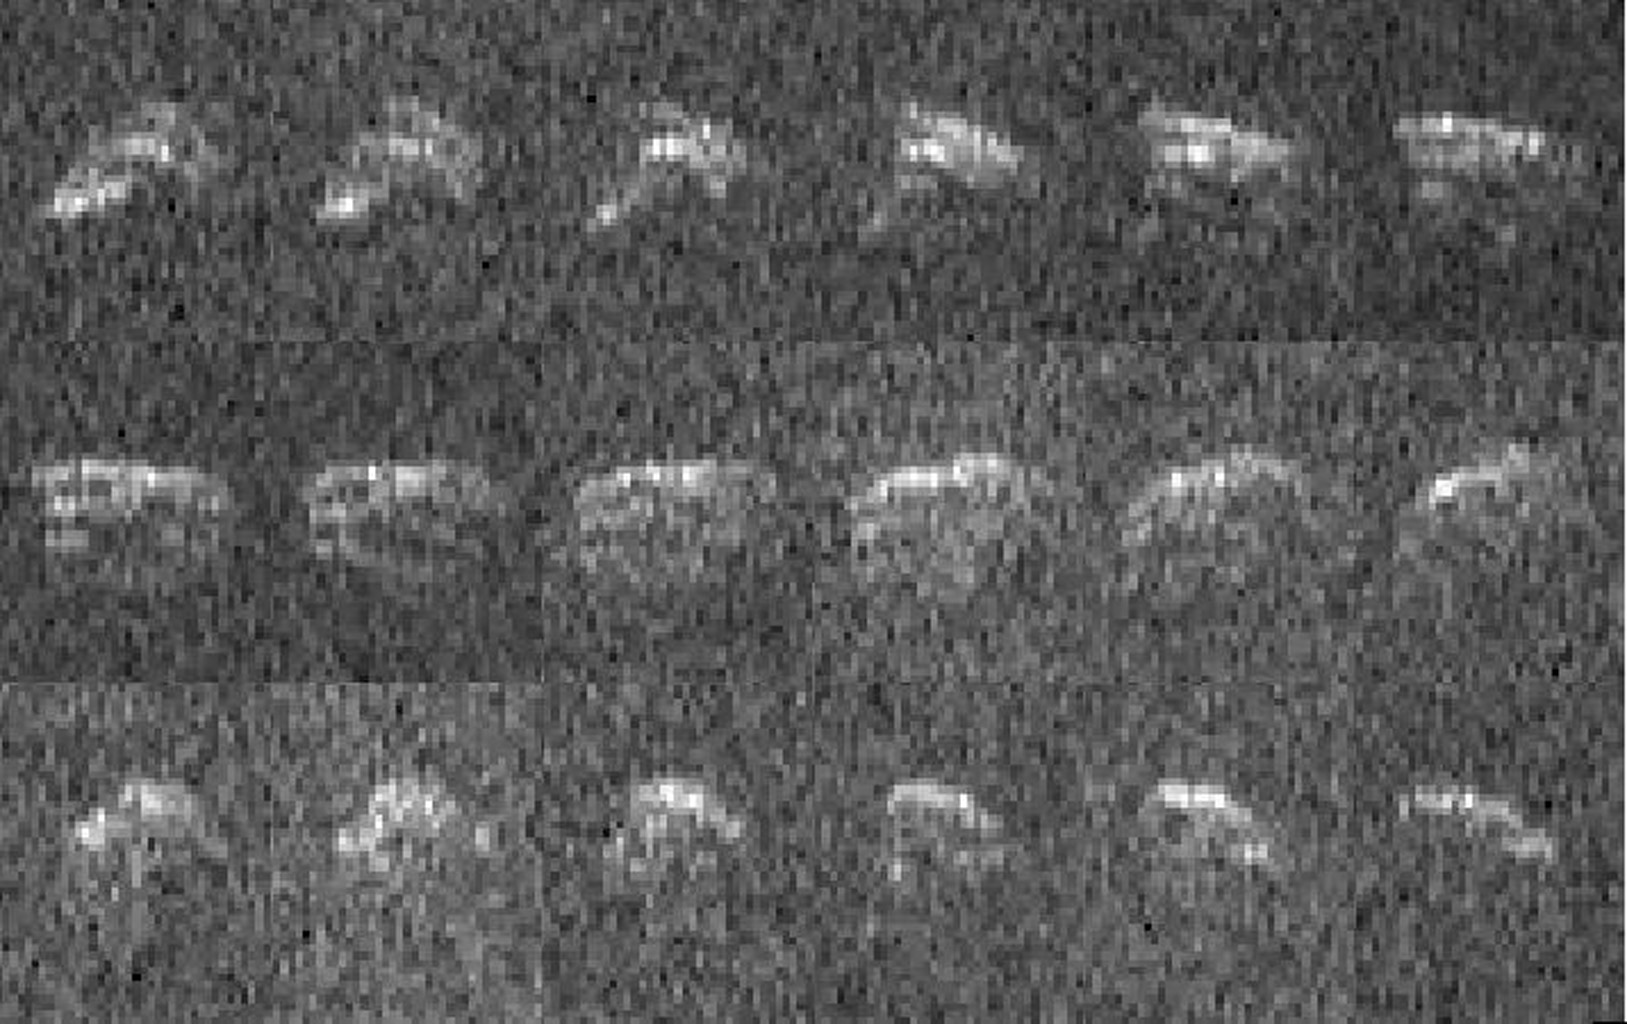 This sequence of radar images of asteroid 2013 ET was obtained on Mar. 10, 2013, by NASA scientists using the 230-foot (70-meter) DSN antenna at Goldstone, CA, when the asteroid was about 693,000 mi (1.1 million km) from Earth.